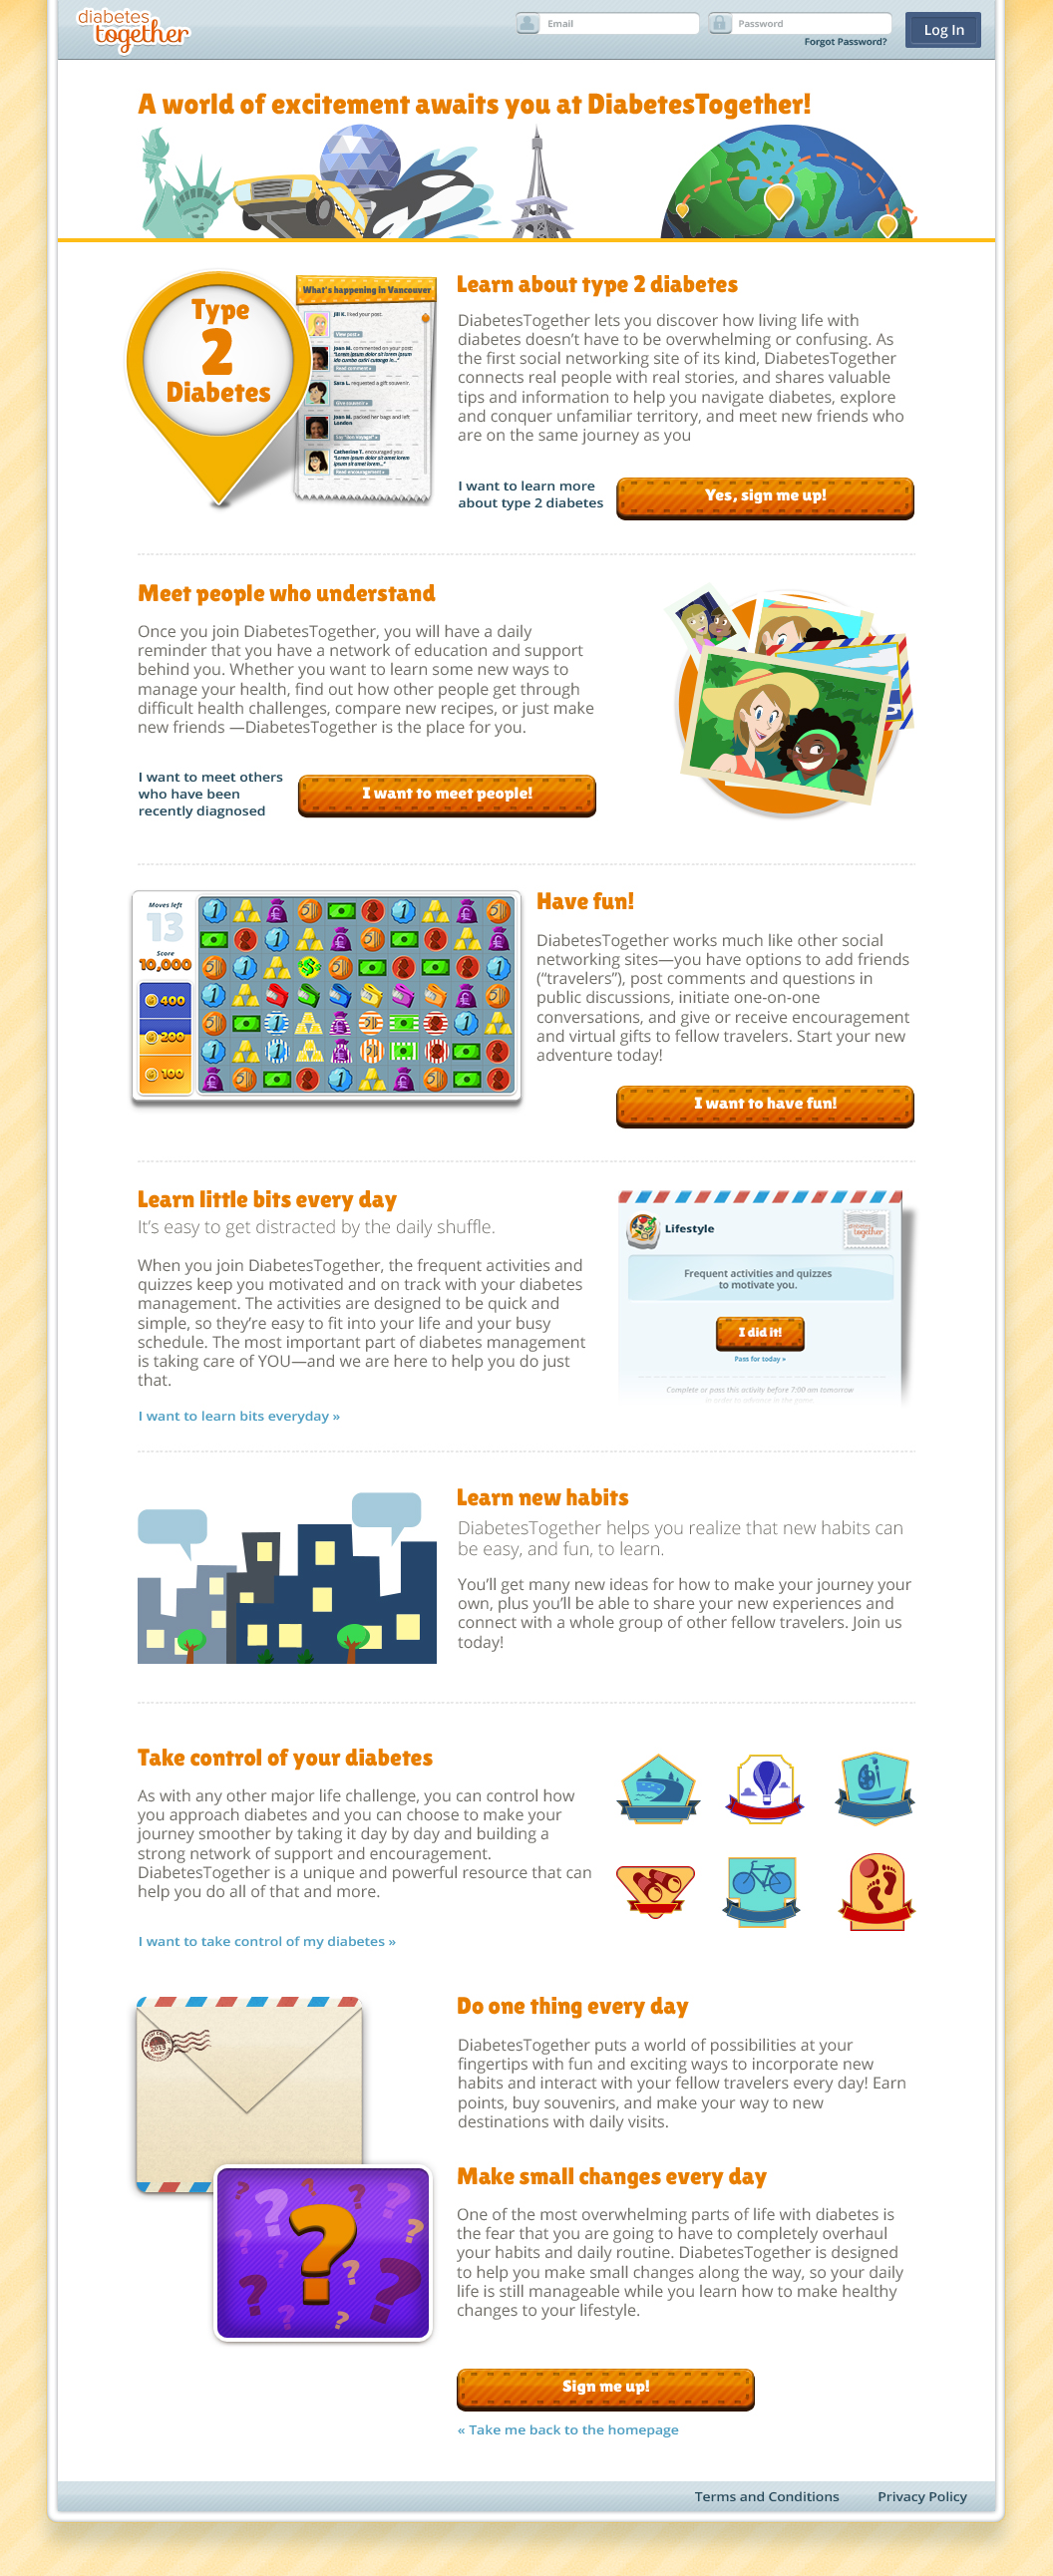 Merck-DiabetesTogether-Screen-LandingPage-v11-In-depth-page